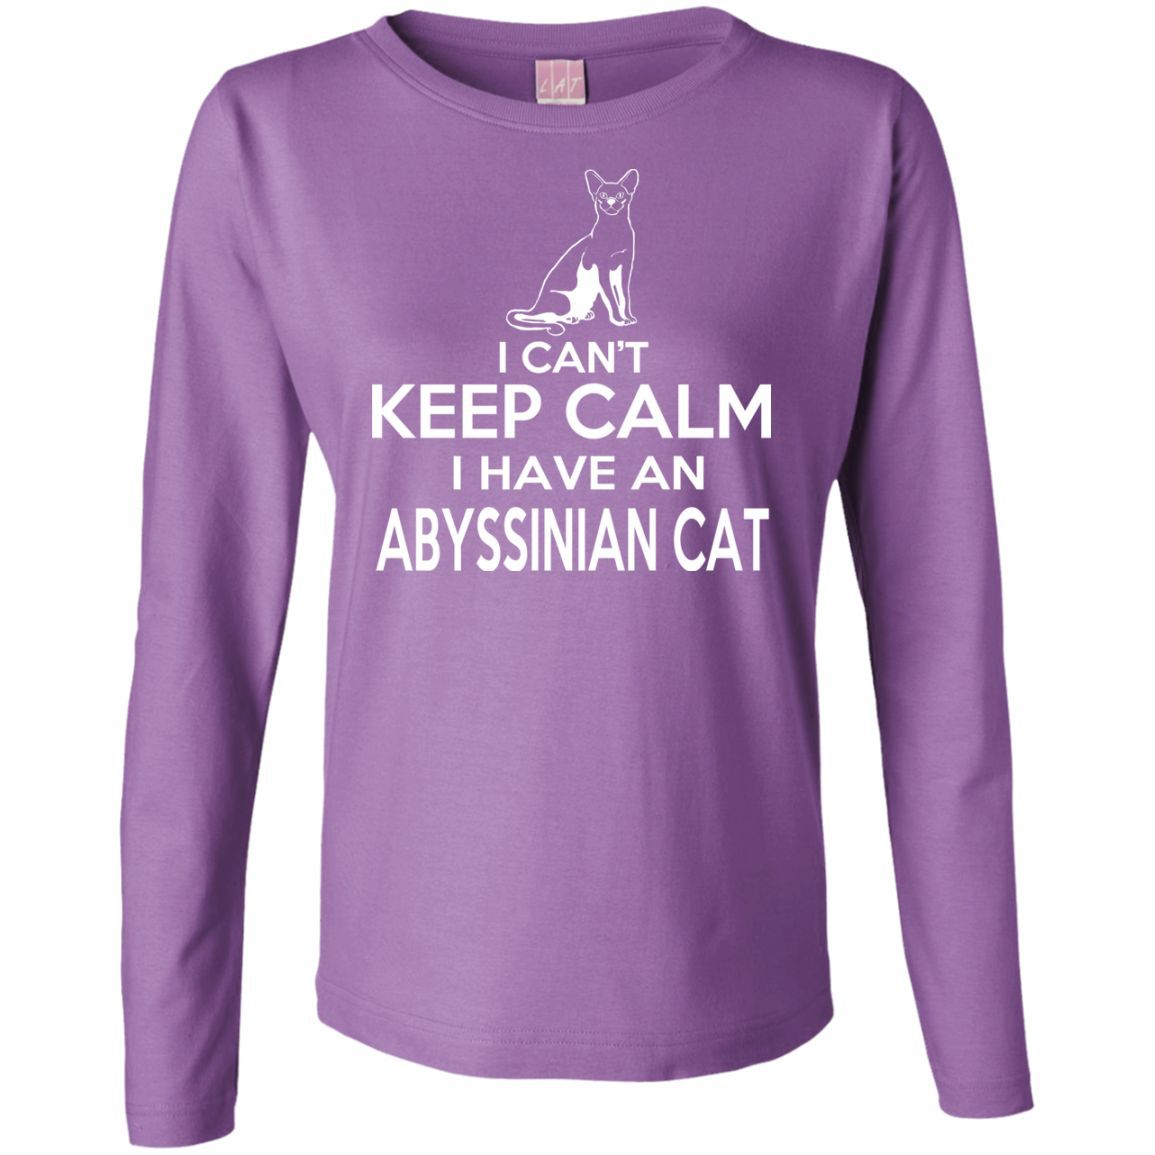 I Cant Keep Calm I Have An Abyssinian Cat Ladies Long Sleeve Tees